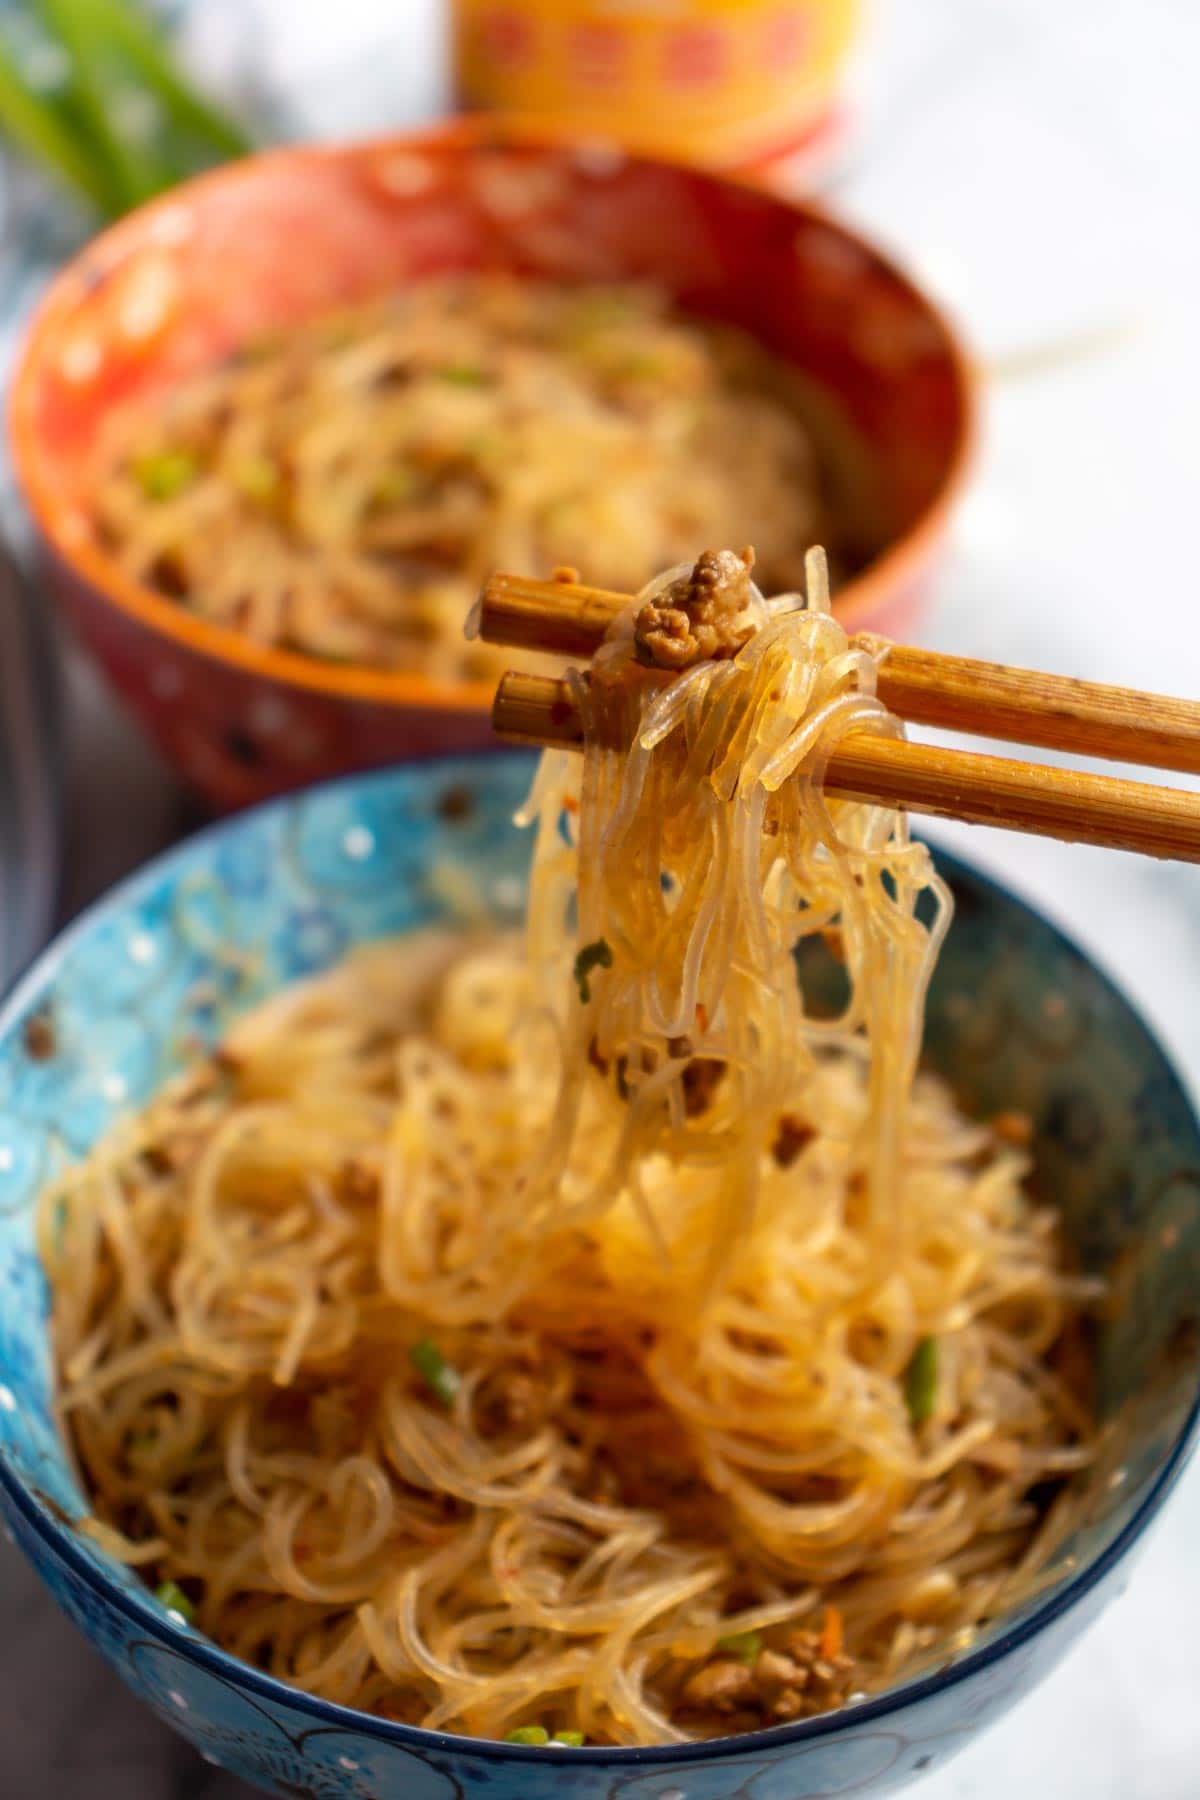 Wooden chopsticks lifting up bean thread noodles with ground pork from a floral blue bowl.